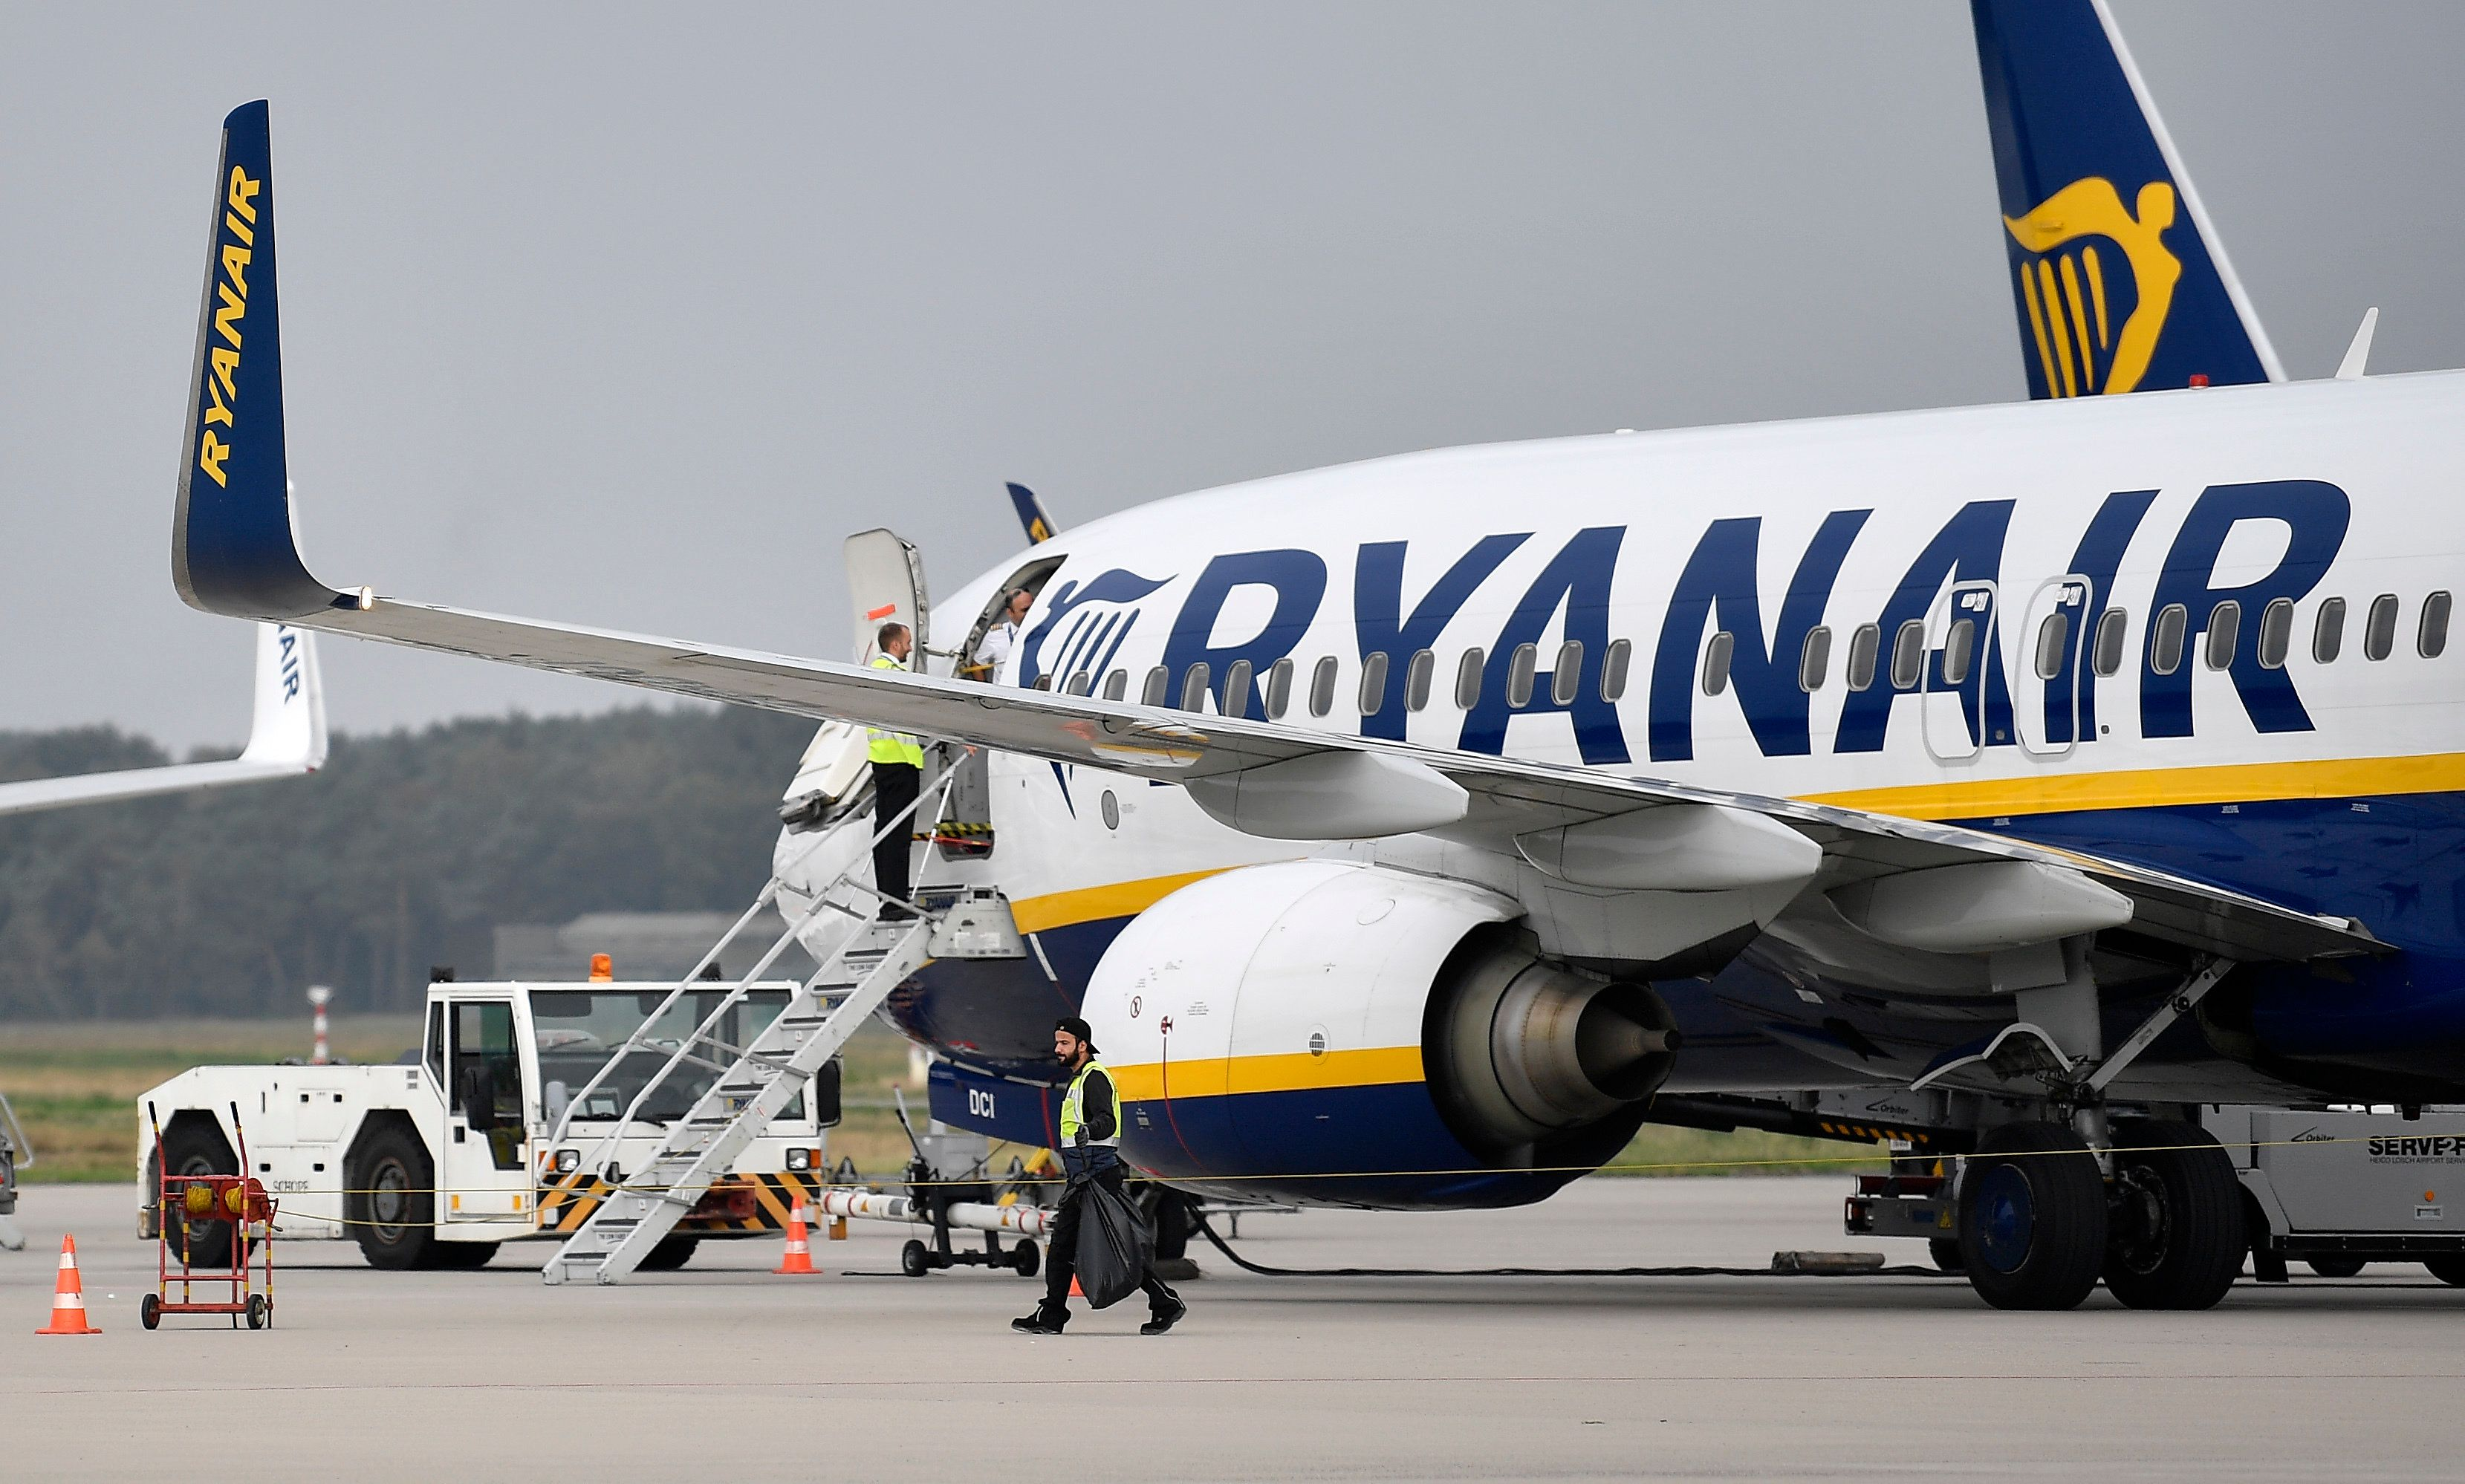 Aviation Regulator Takes Action Against Ryanair For Refusing To Compensate